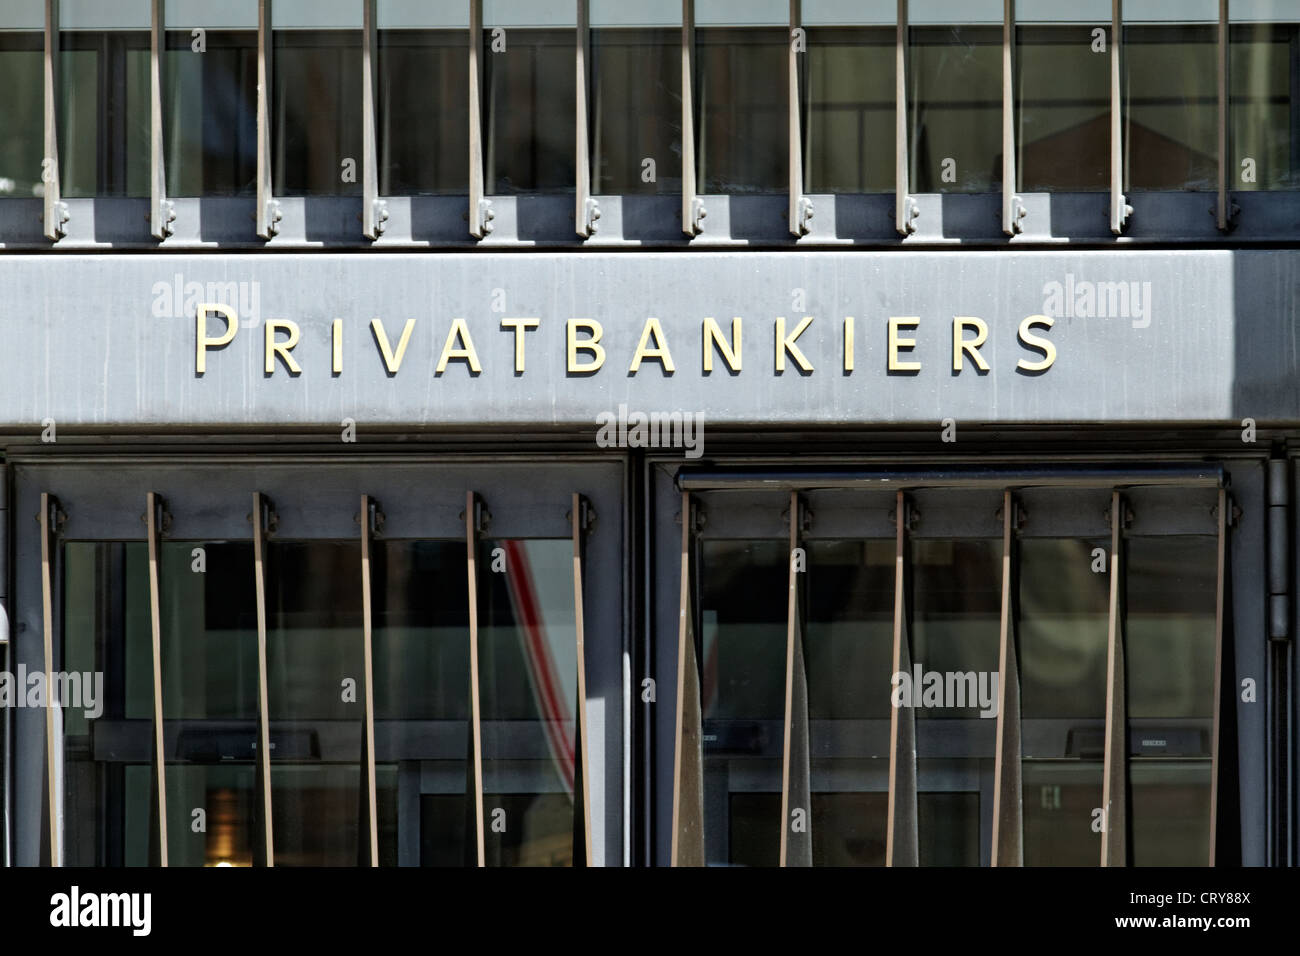 German private bankers sign ( Privatbankiers ) - Stock Image